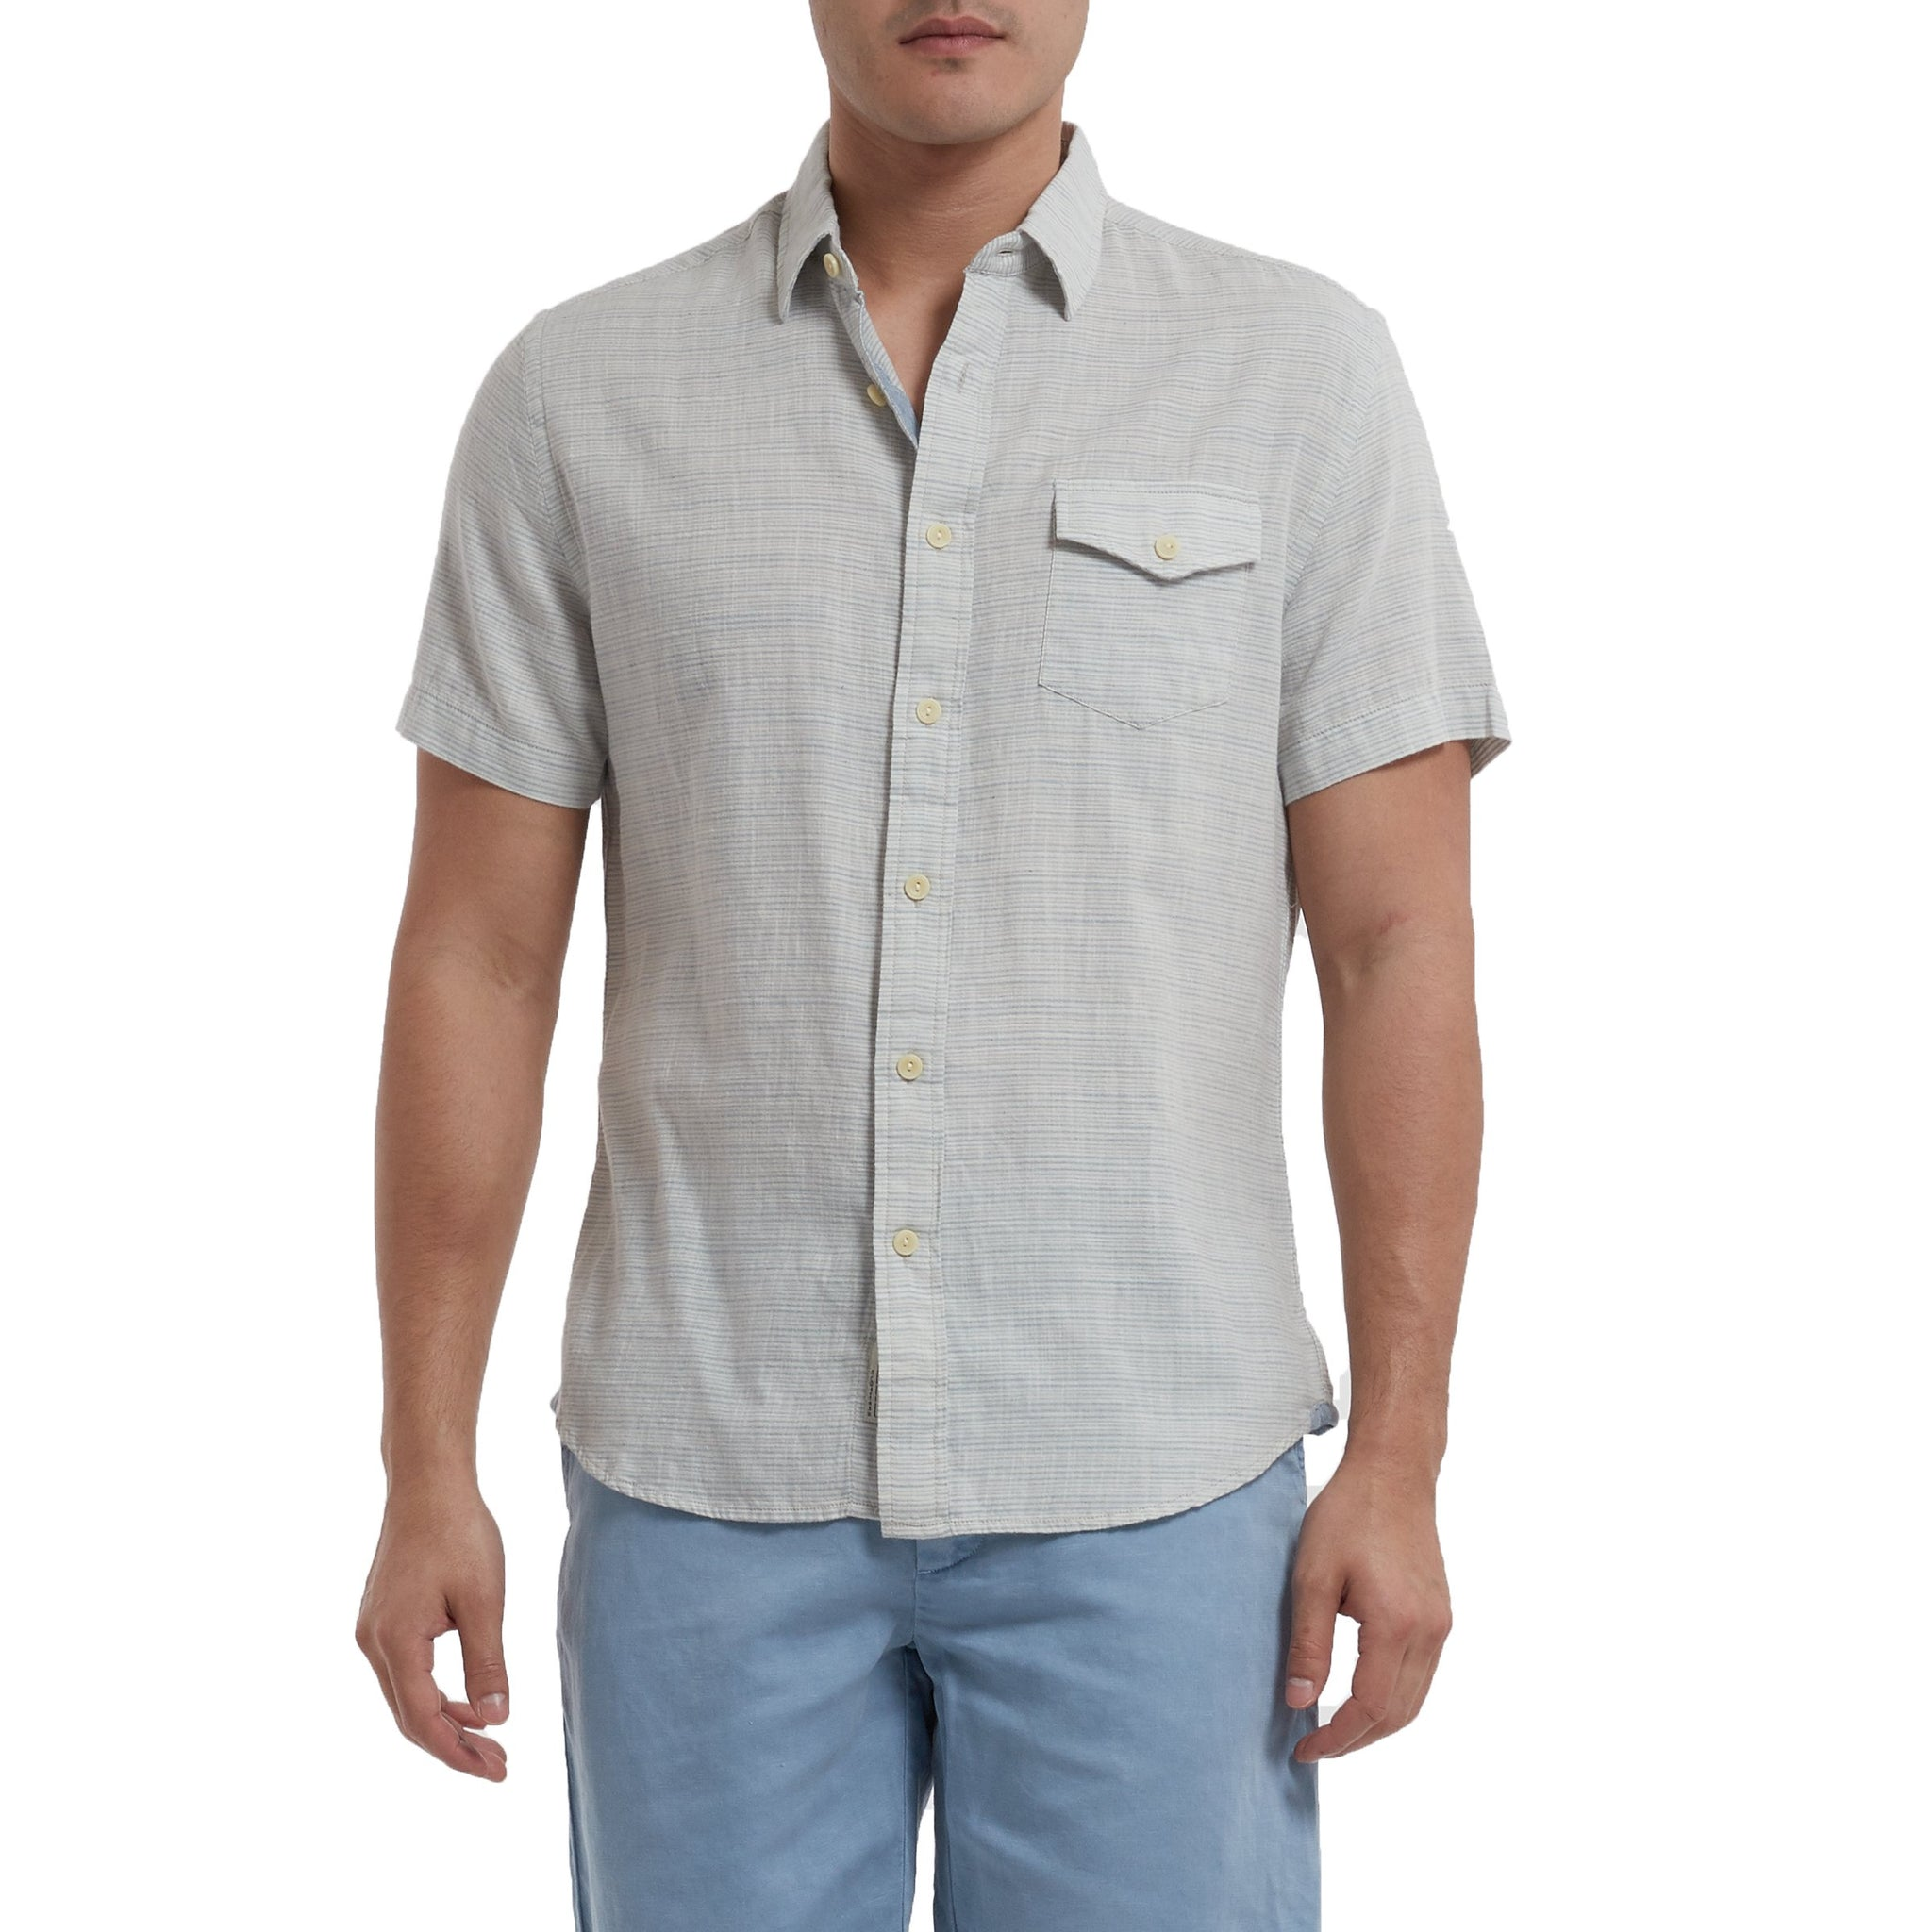 Grayers Horizon Summer Twill Shirt WS25217